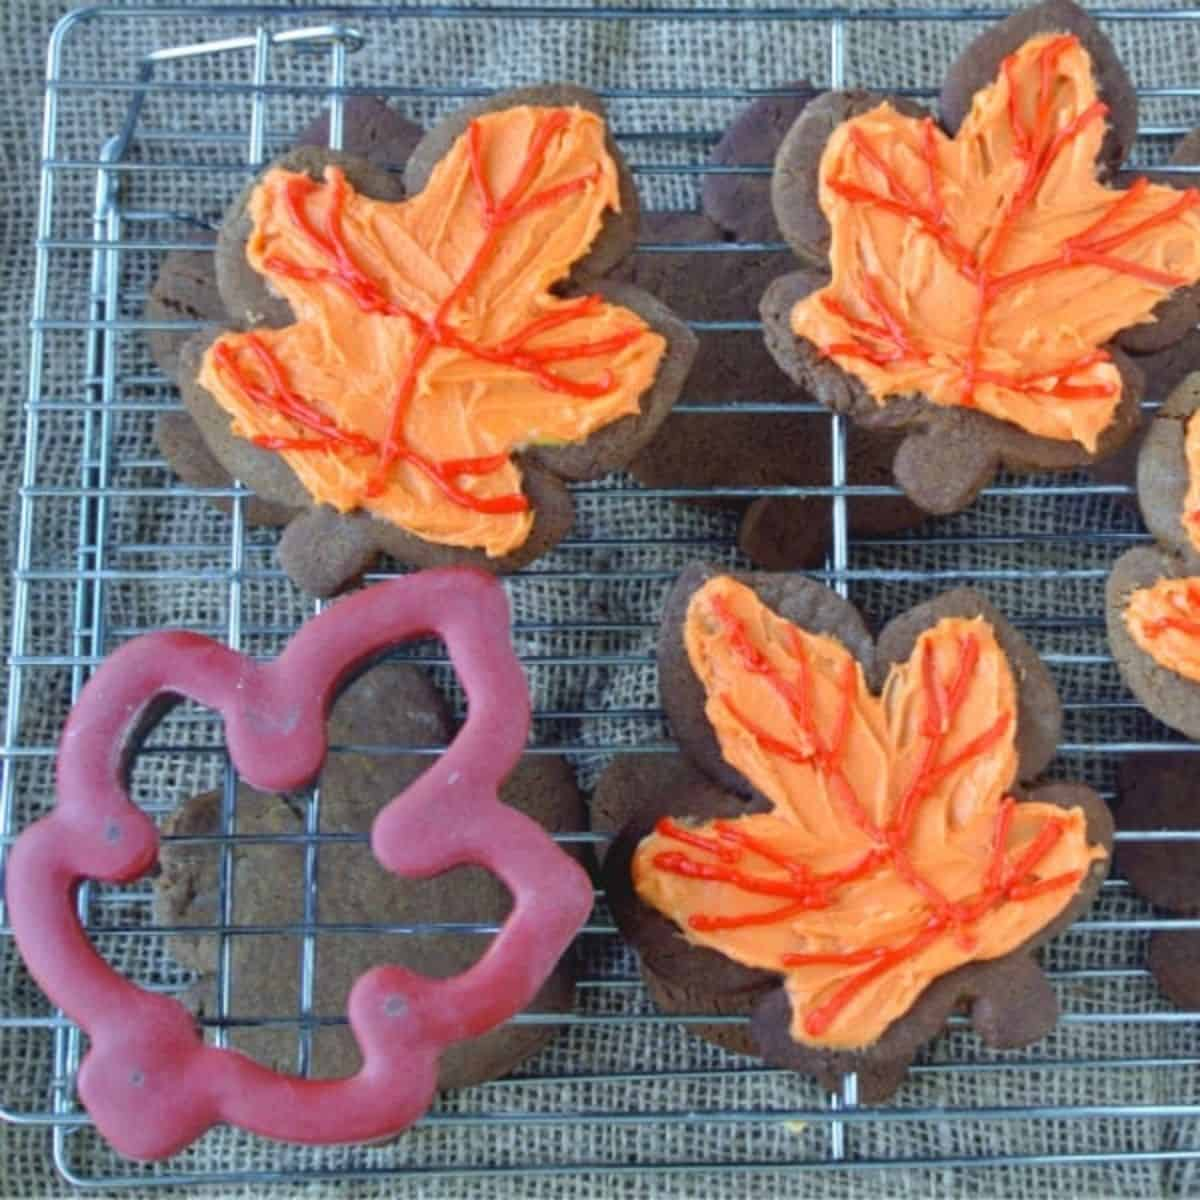 Four leaf shaped ginger cookies that have been frosting with pumpkin buttercream frosting that has been dyed orange and red are sitting on a wire drying rack. A leaf shaped cookie cutter is in the bottom corner.